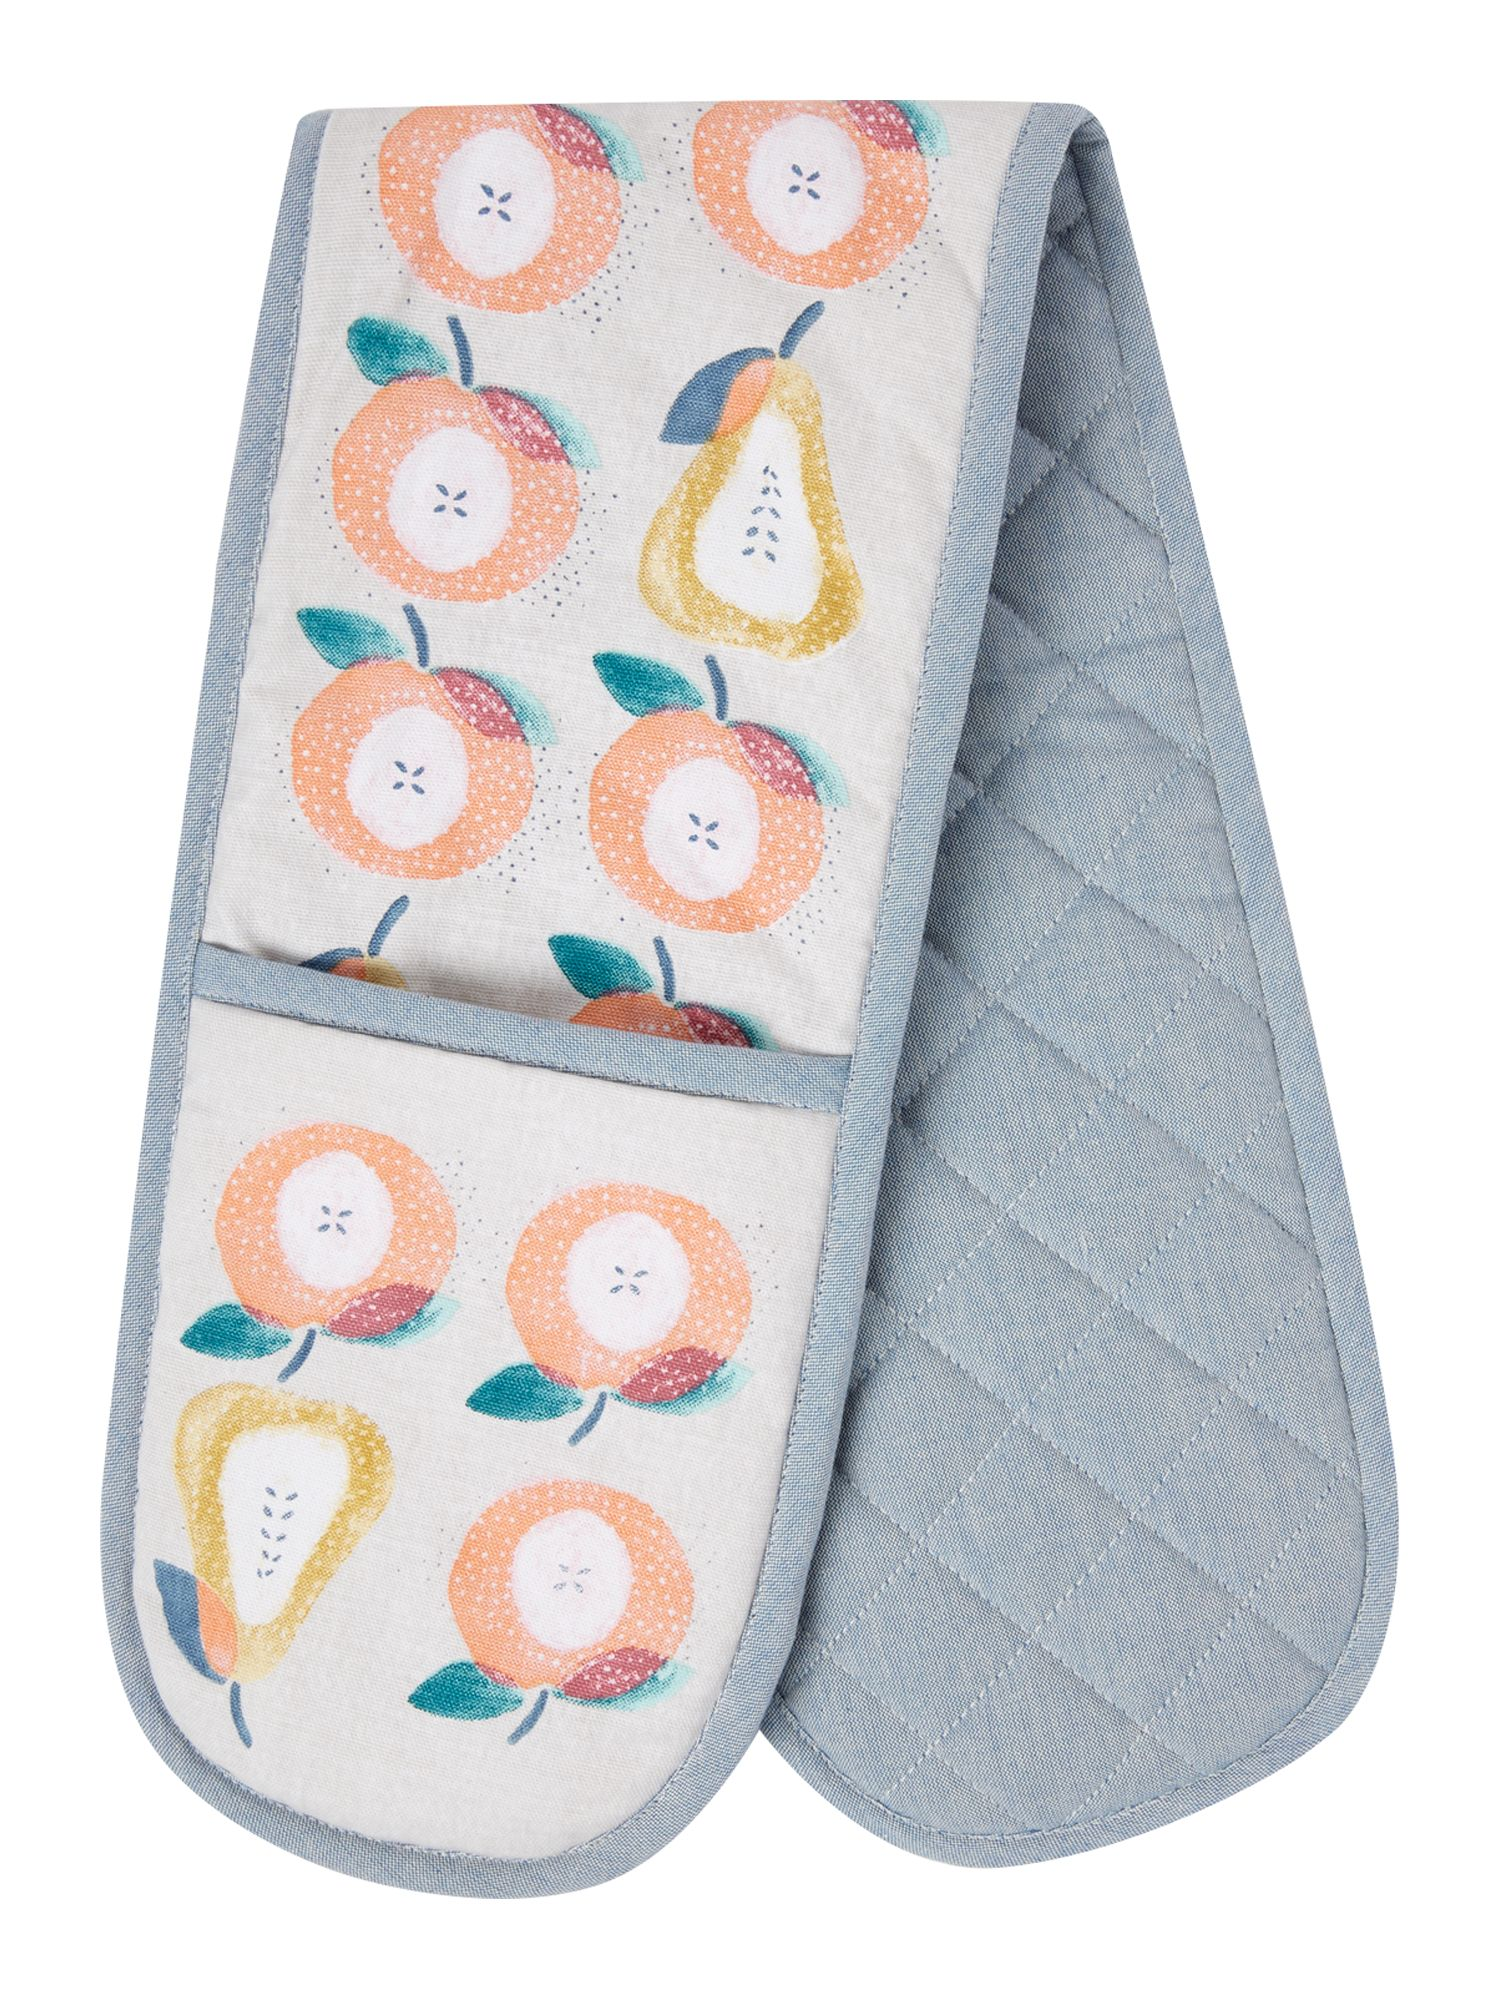 Image of Dickins & Jones Apples and pears double oven glove